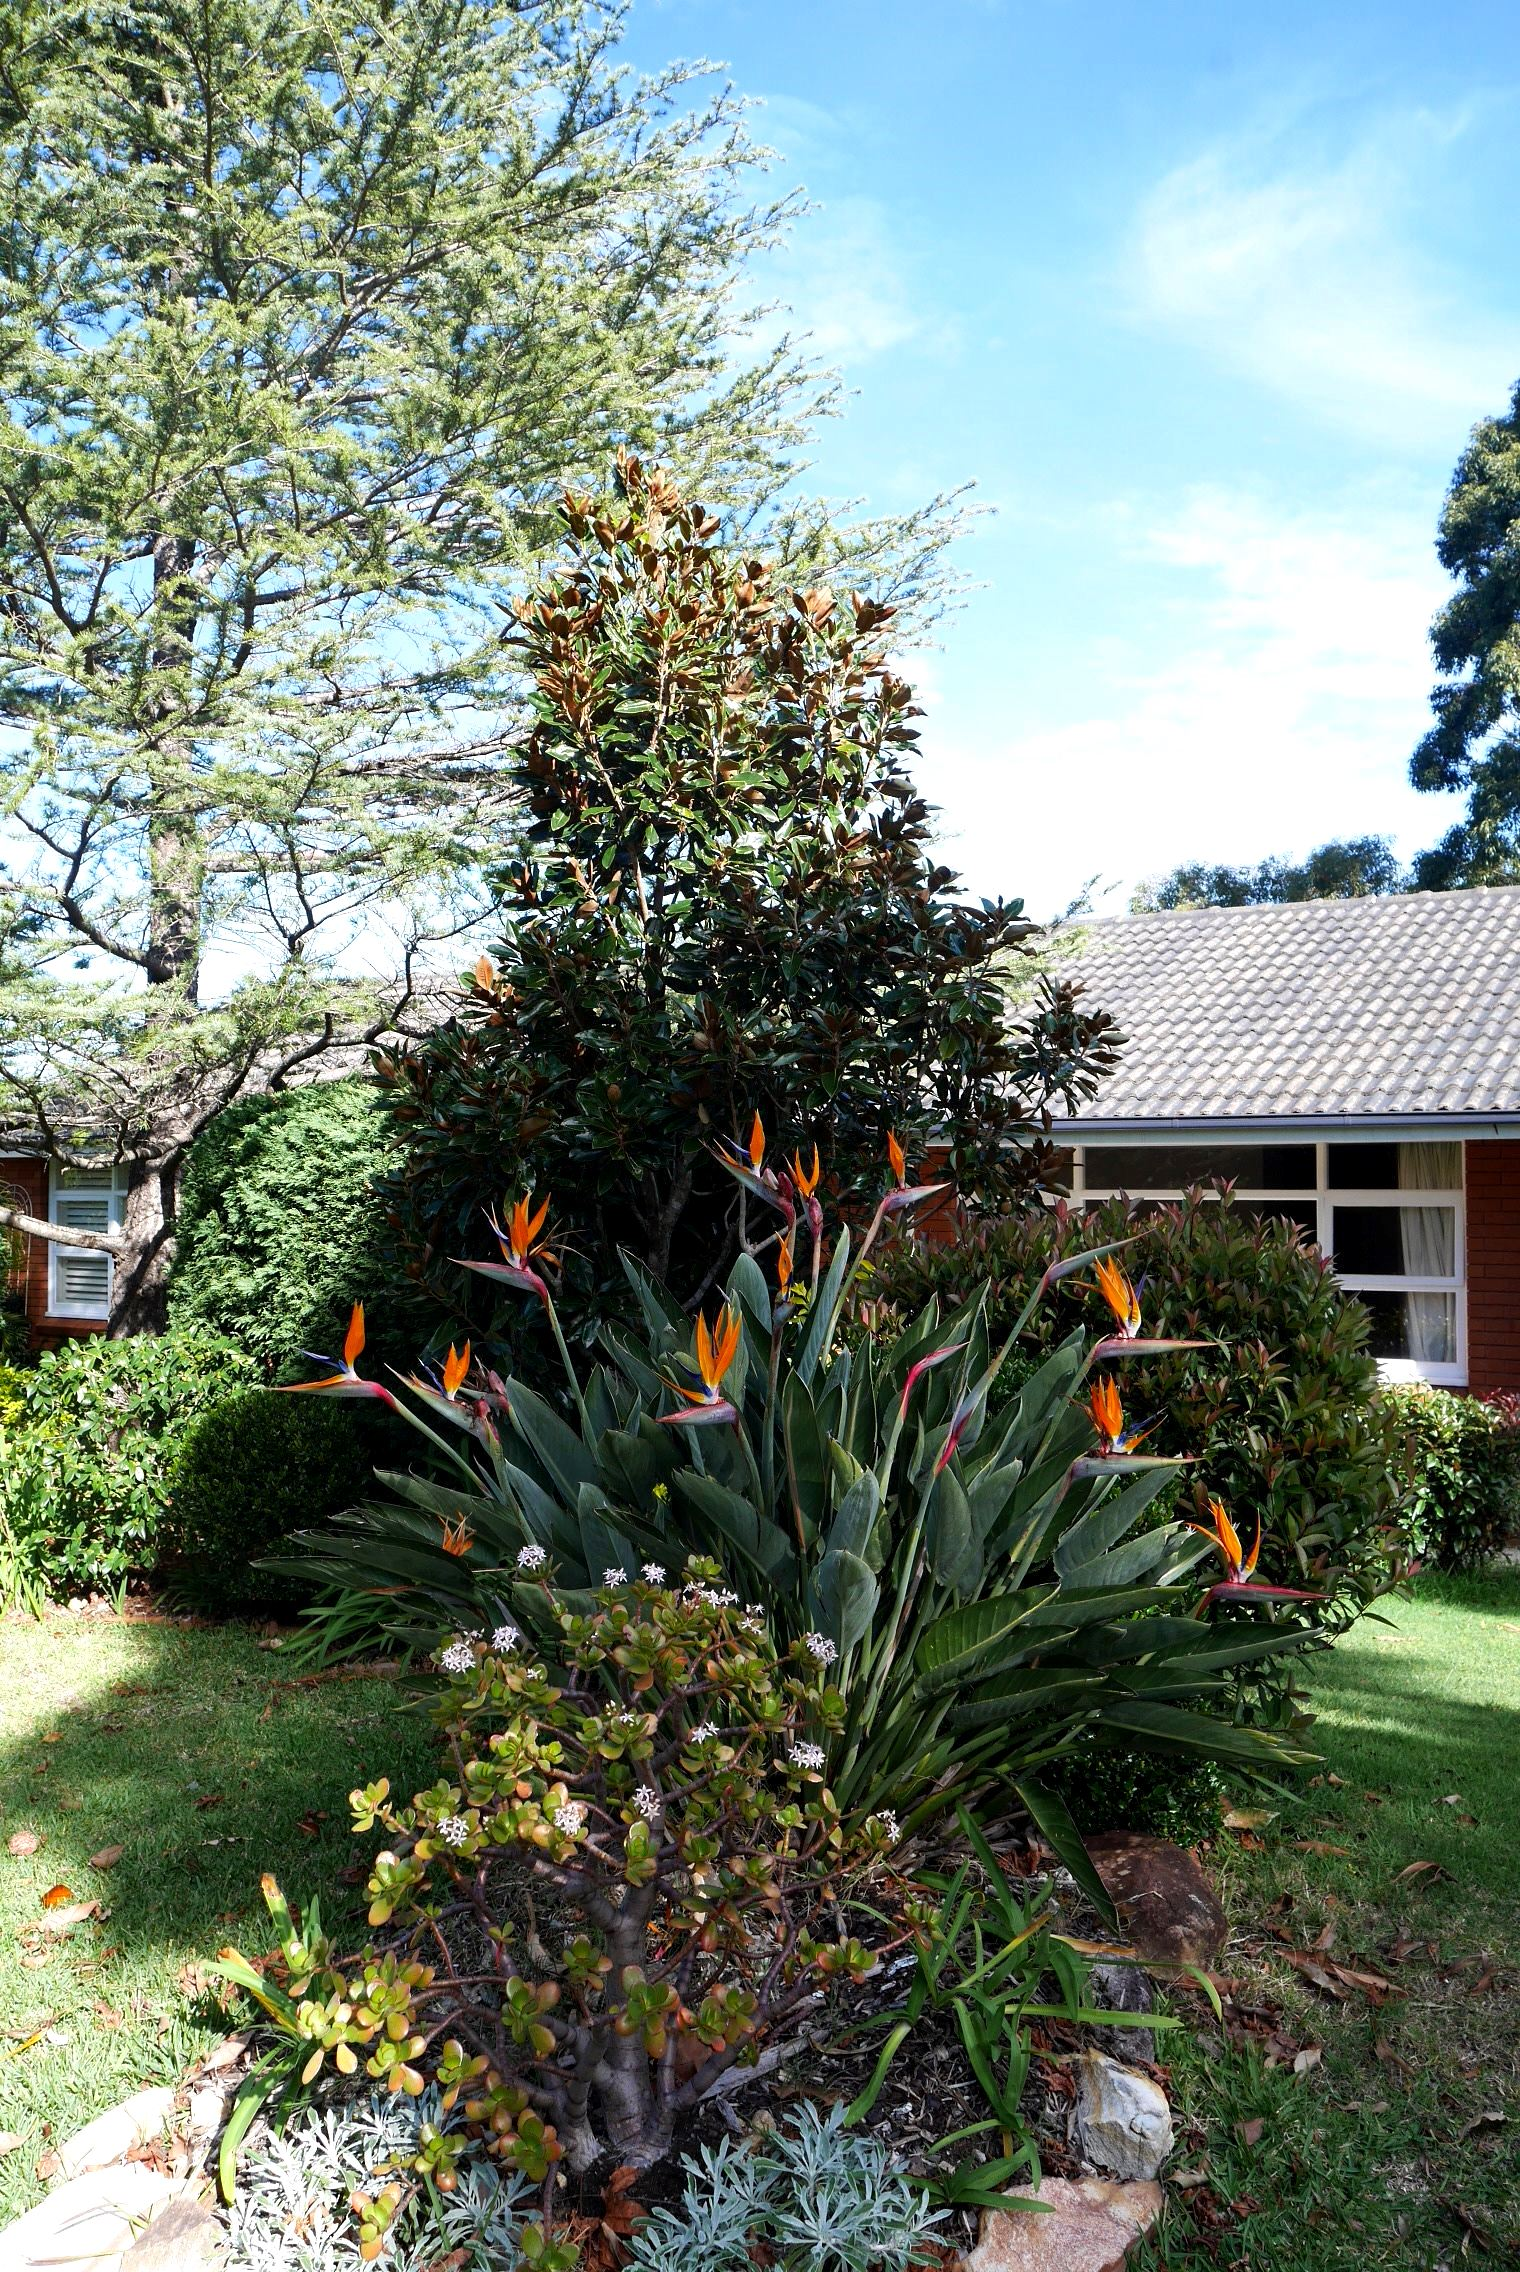 Bird of paradise plant on our front lawn (money plant in foreground)